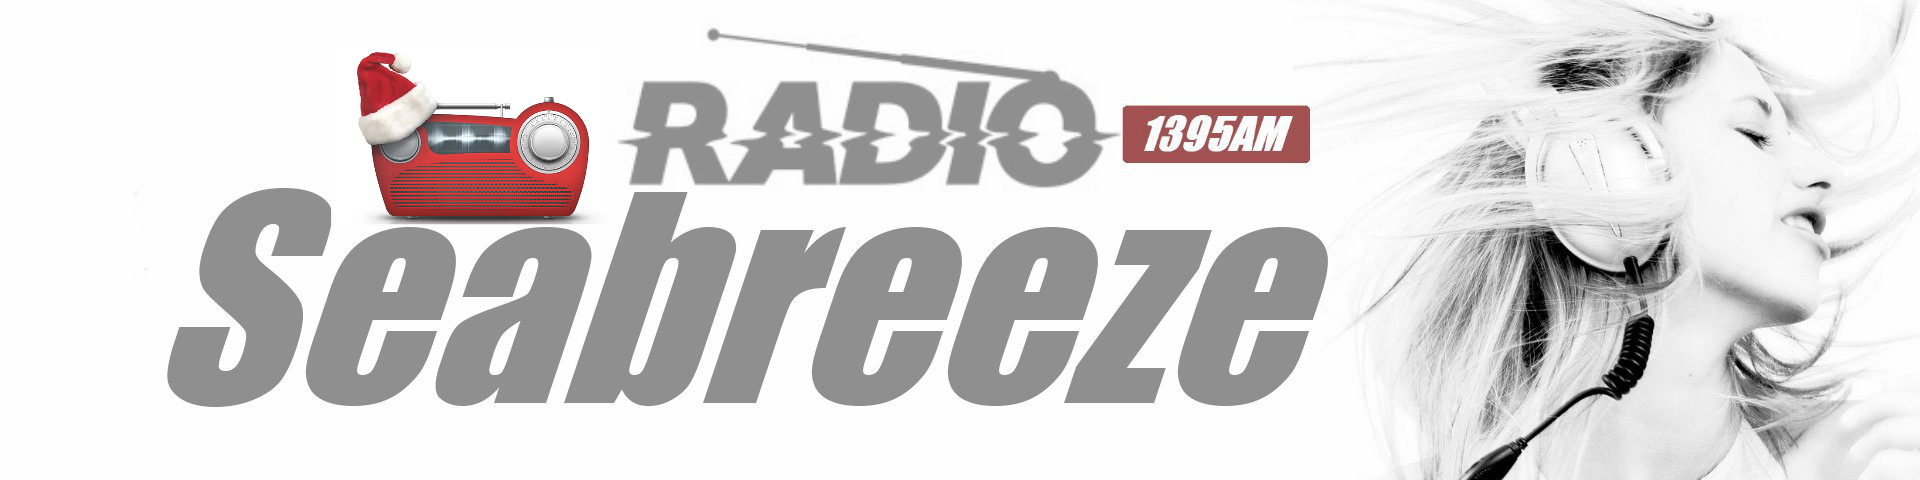 Radio Seabreeze